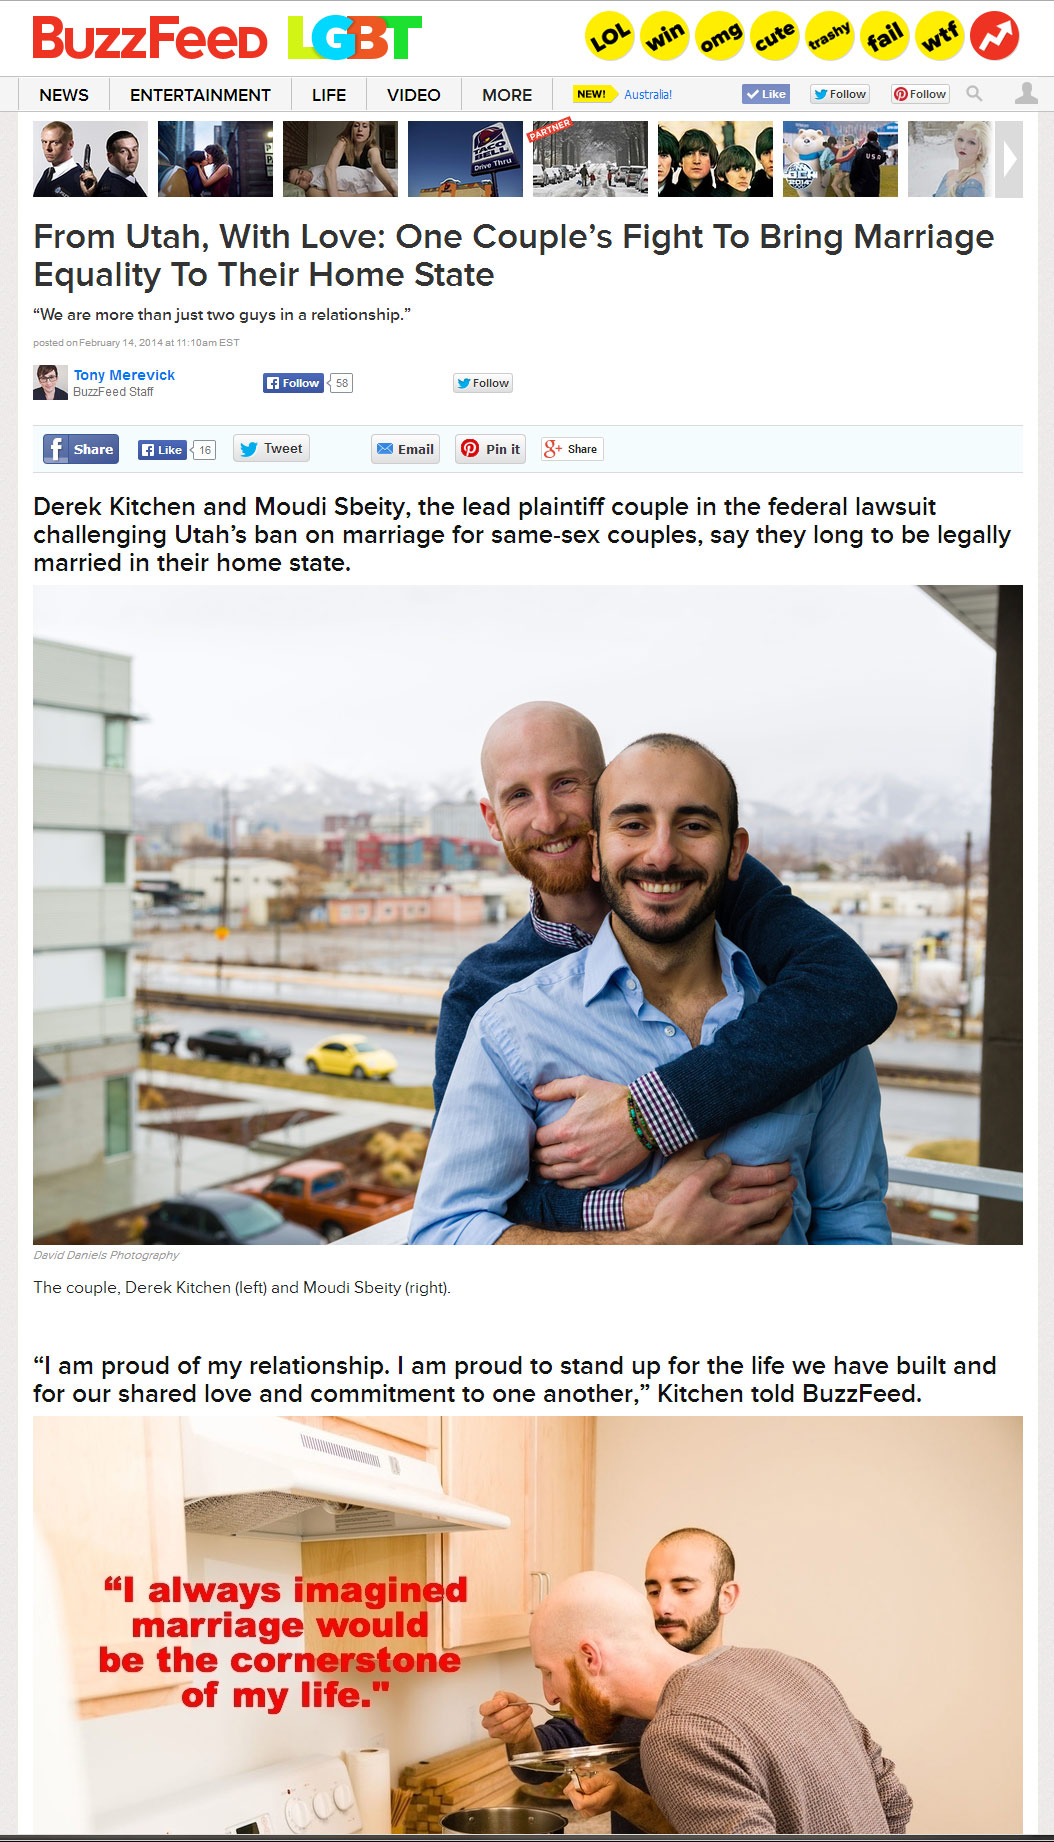 Derek Kitchen & Moudi Sbeity on Buzzfeed with my photography